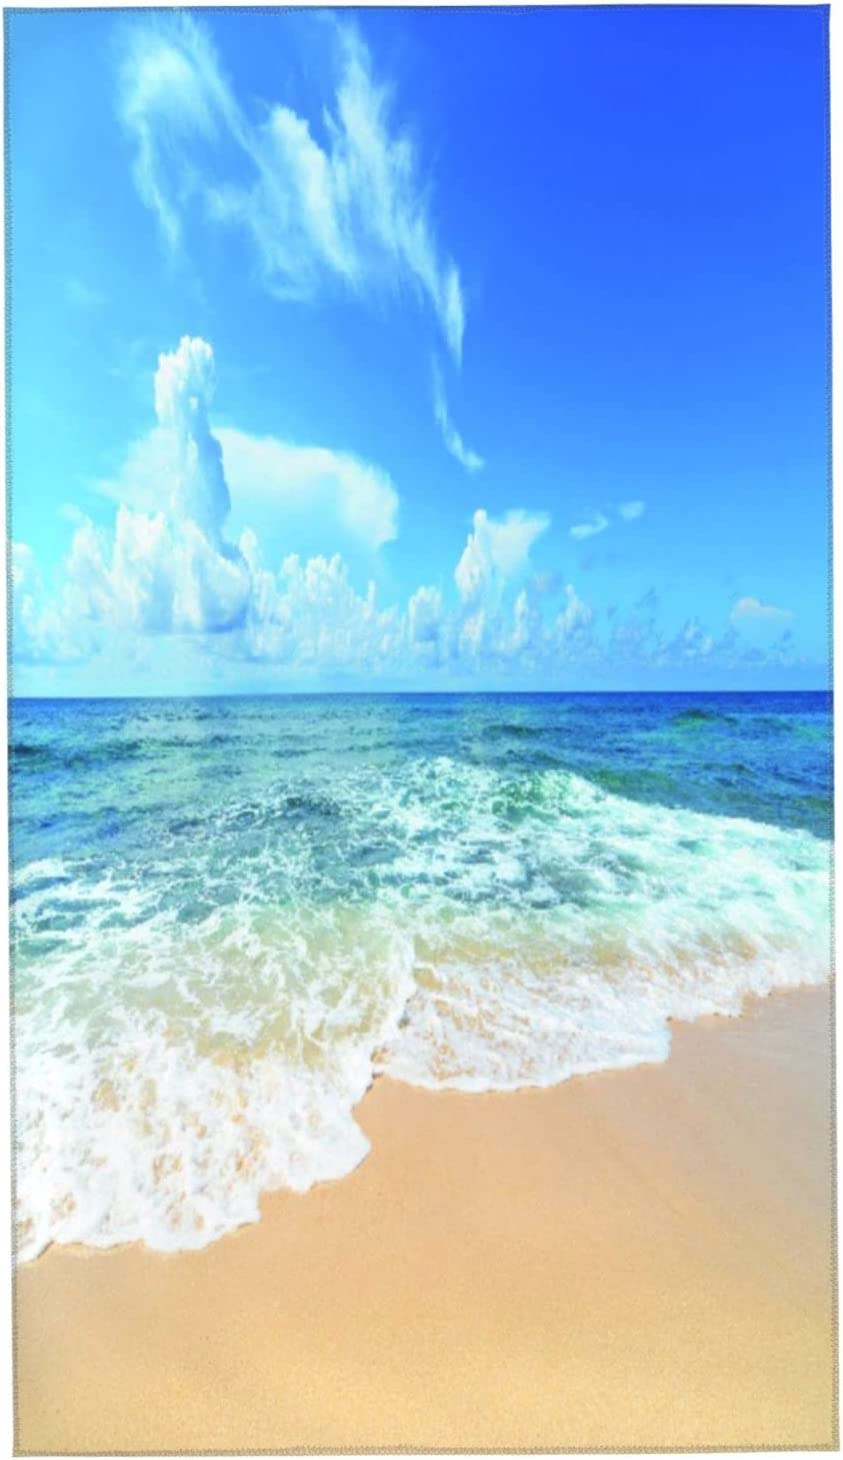 SUDISSKM Max 82% OFF Hand Towels Ocean Waves All items in the store Beach Paradise and Golden with